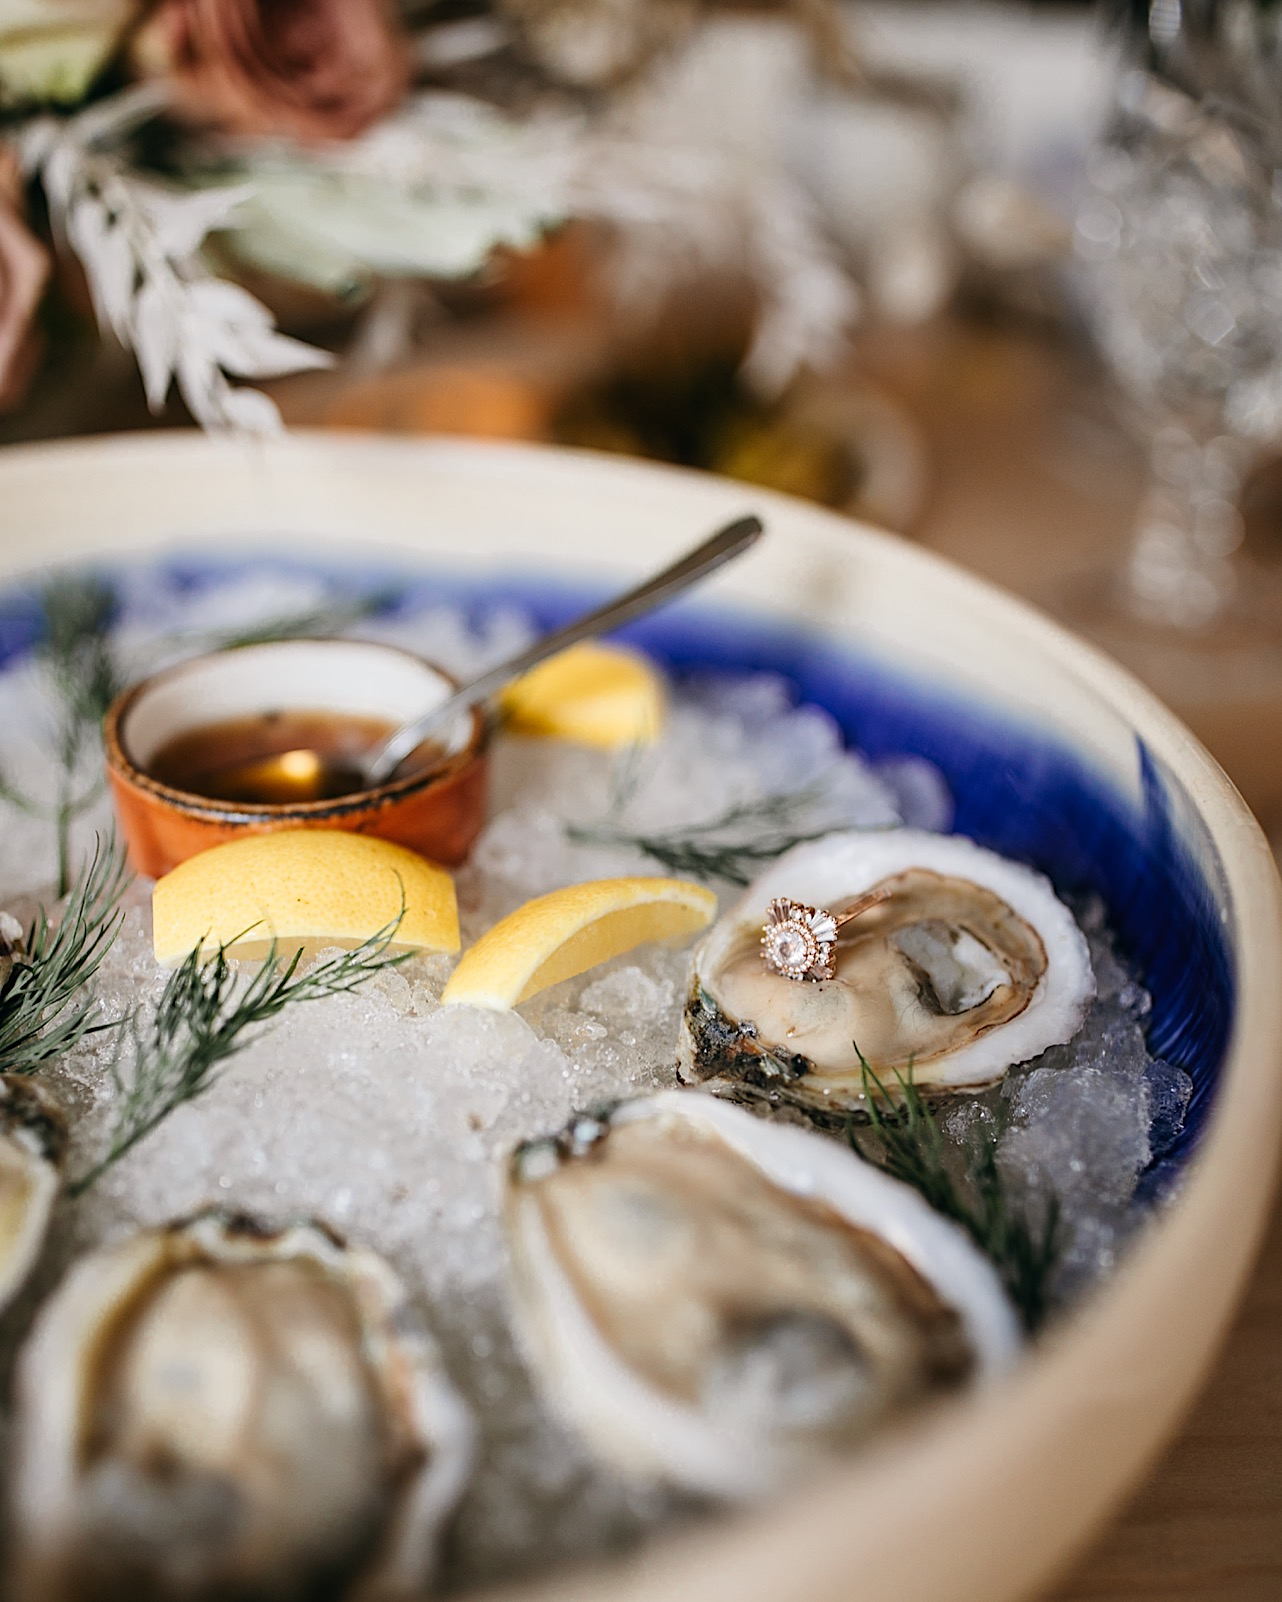 Oysters on a half shell on ice in a blue and white bowl at Easy Bistro & Bar.